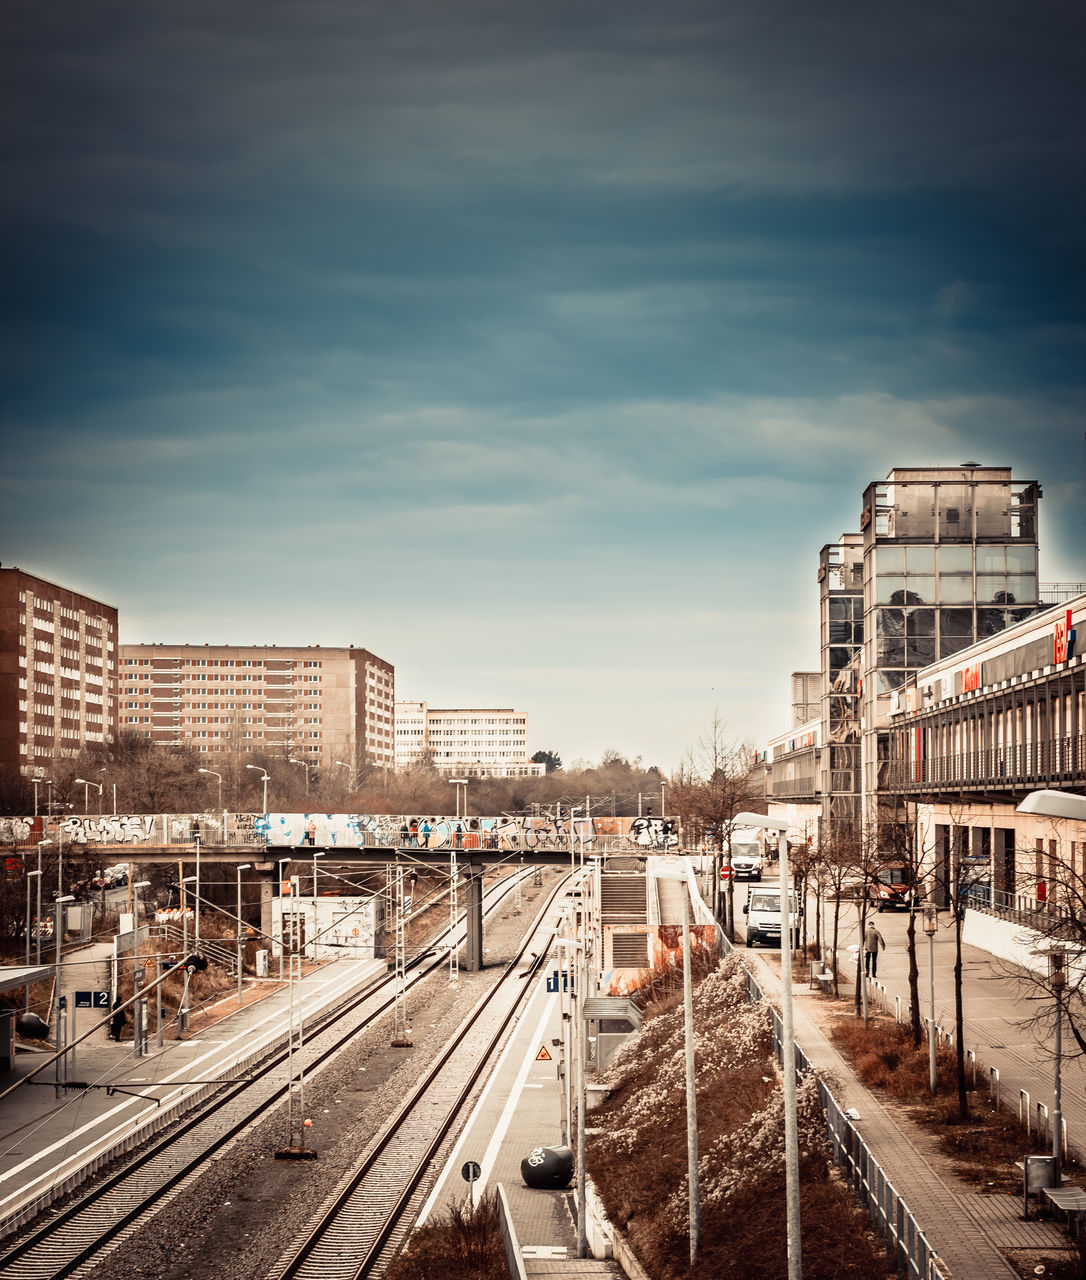 railroad track, transportation, rail transportation, built structure, sky, architecture, railway track, public transportation, building exterior, train - vehicle, cloud - sky, shunting yard, no people, outdoors, city, day